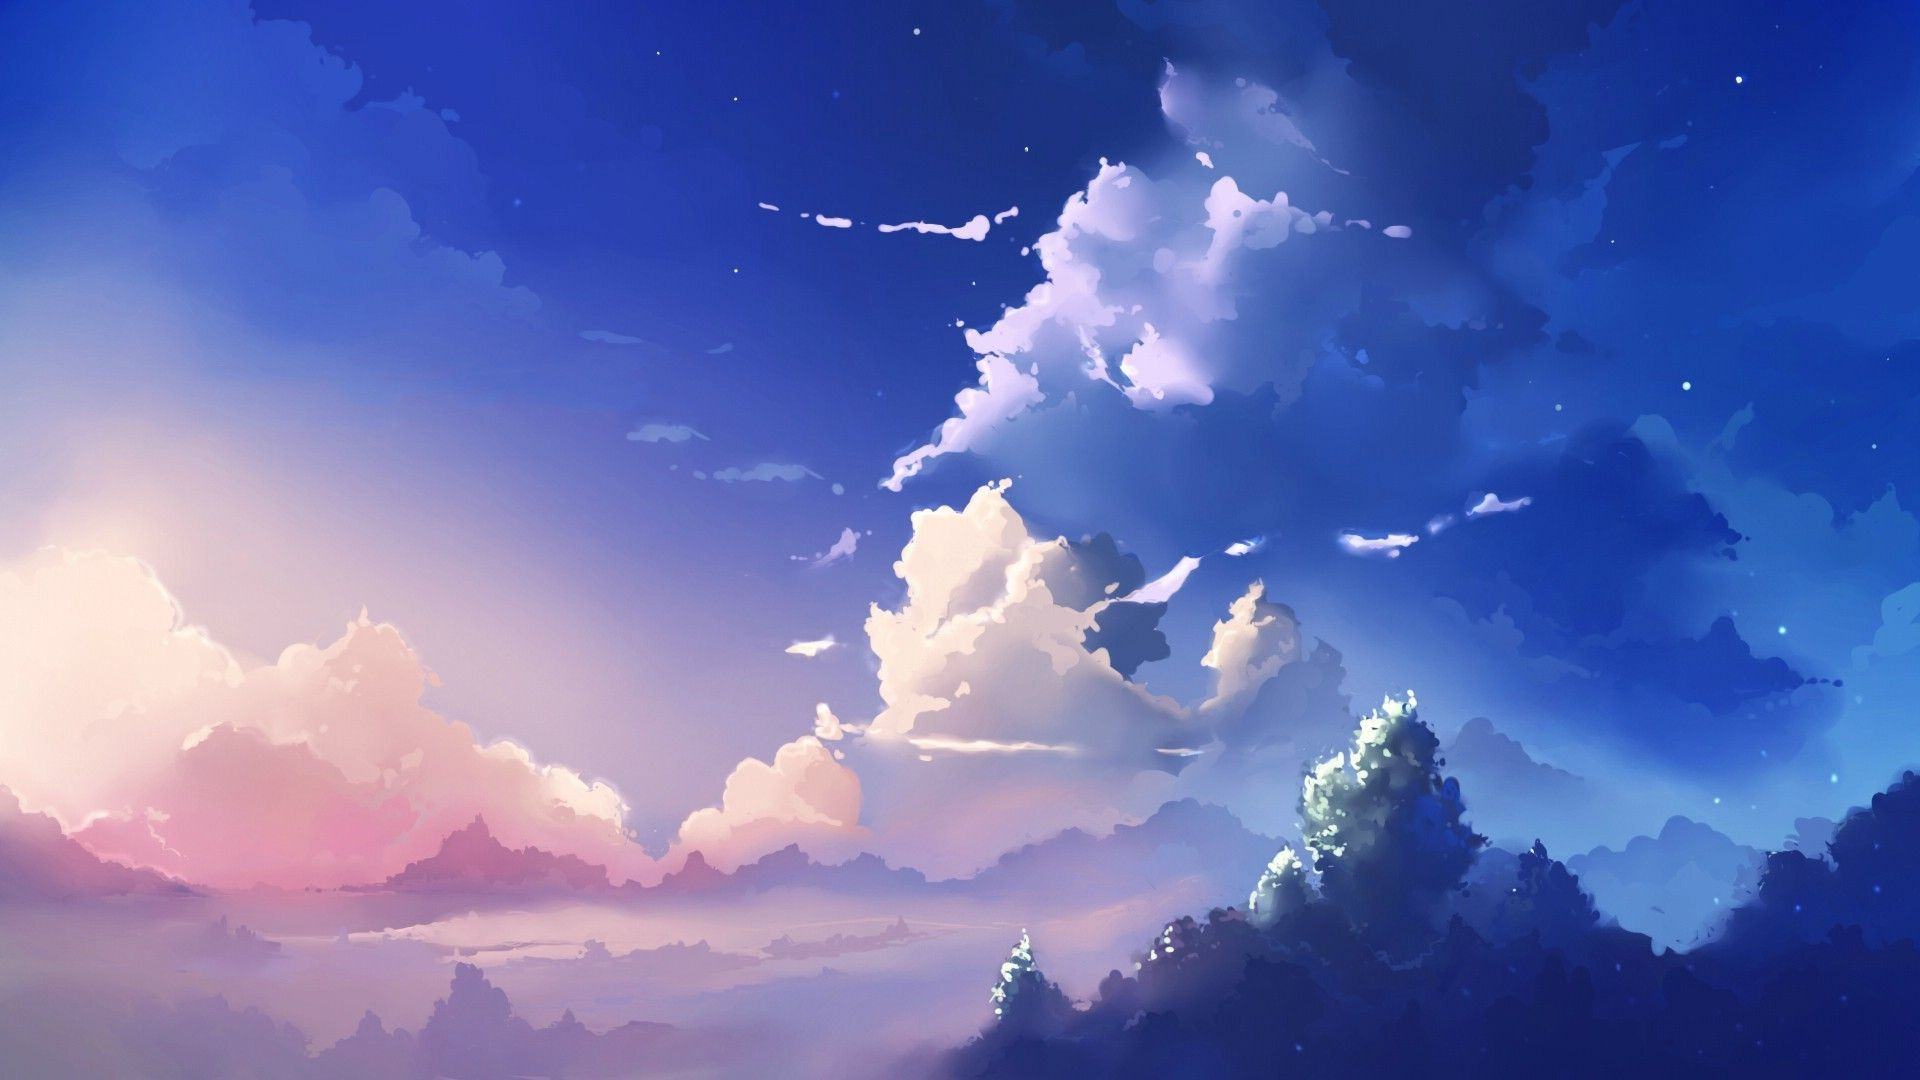 Background Anime 81 Pictures In 2020 Scenery Wallpaper Anime Backgrounds Wallpapers Anime Scenery